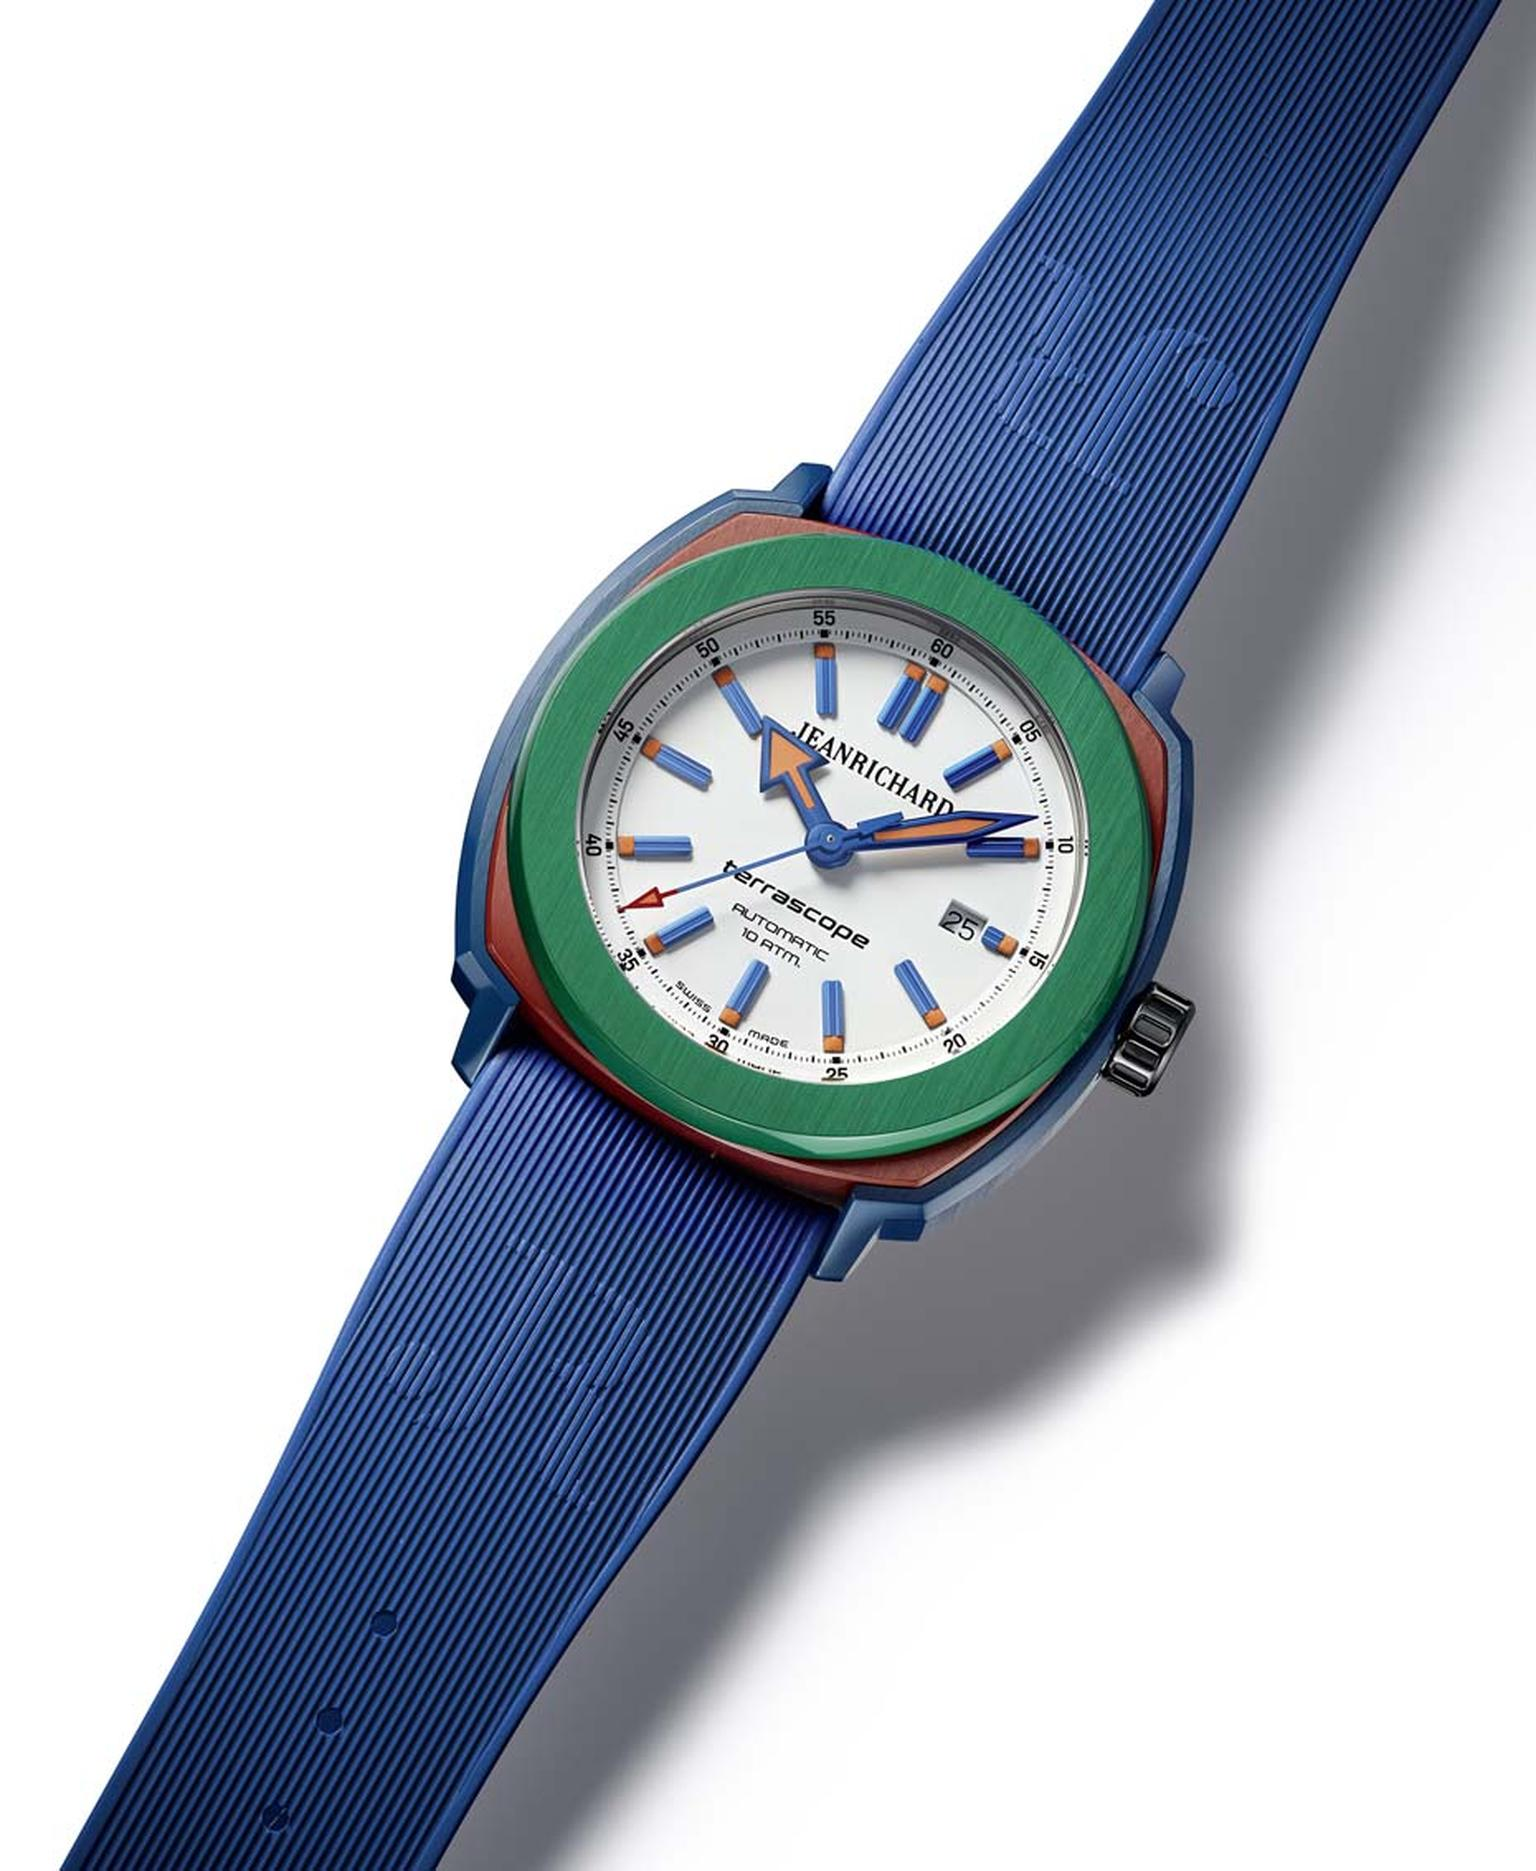 JeanRichard Terrascope watch with a green bezel and blue strap is a colourful take on the collection which remains true to the originals design's tonneau case, large round bezel, alternating polished and satin-brushed finishings, and various coatings.